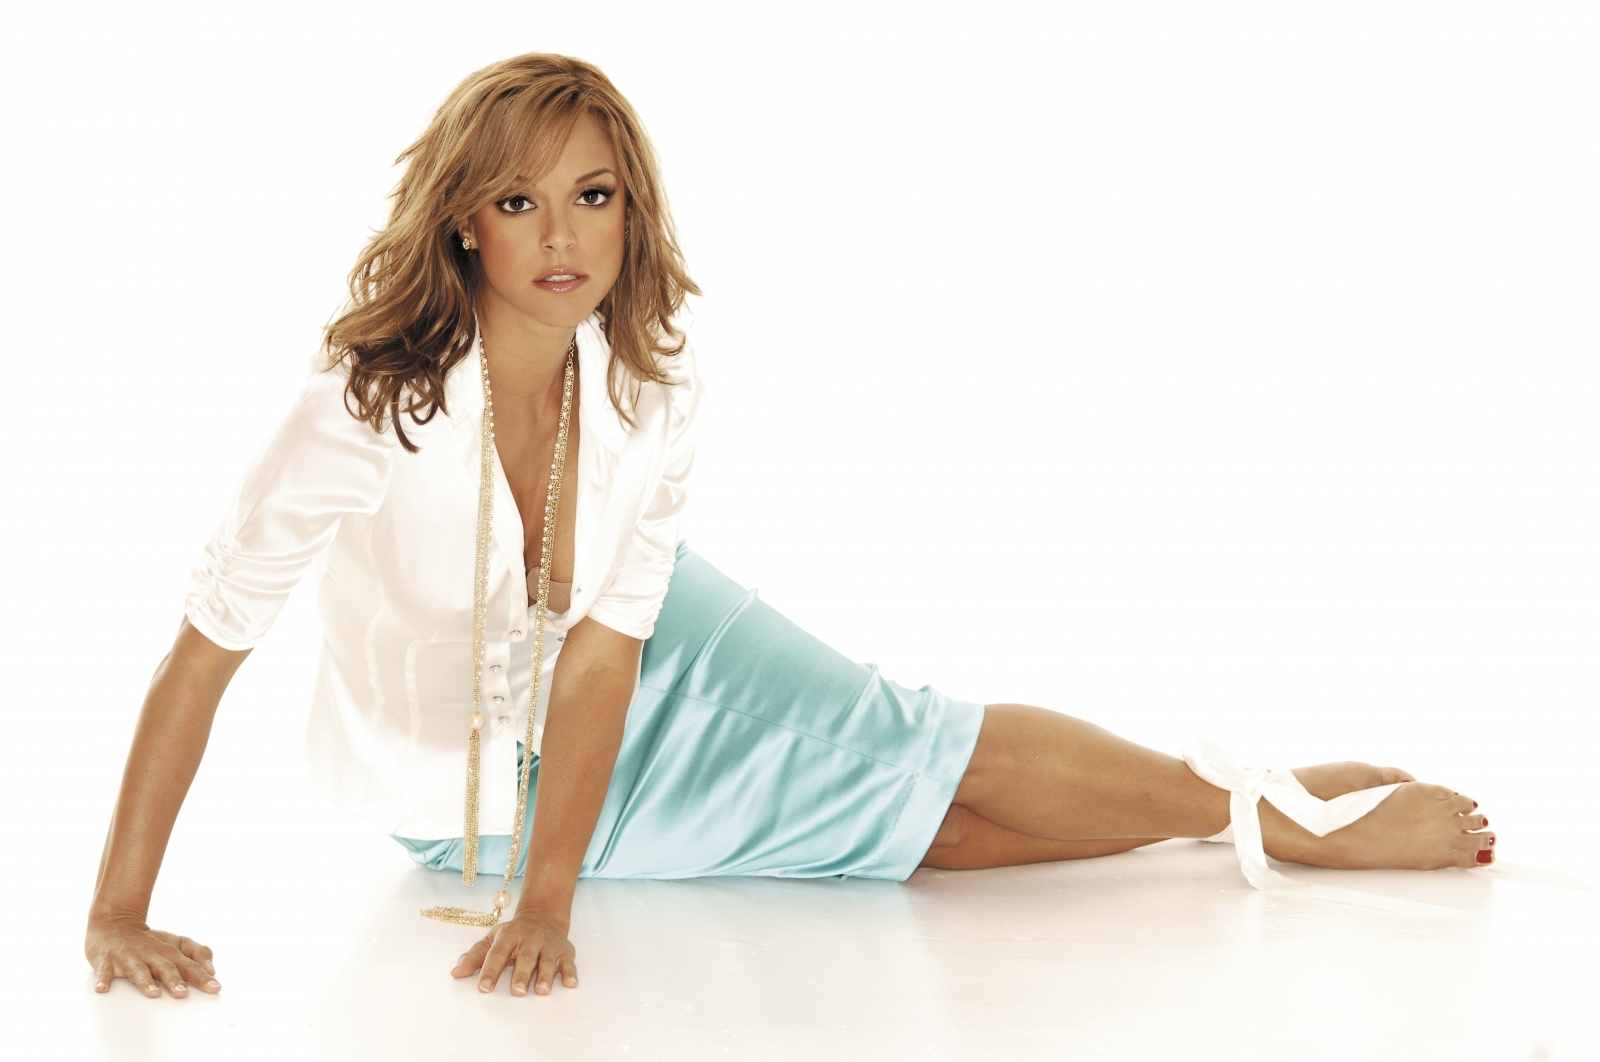 Feet Eva LaRue nude (55 photo), Tits, Bikini, Instagram, legs 2019